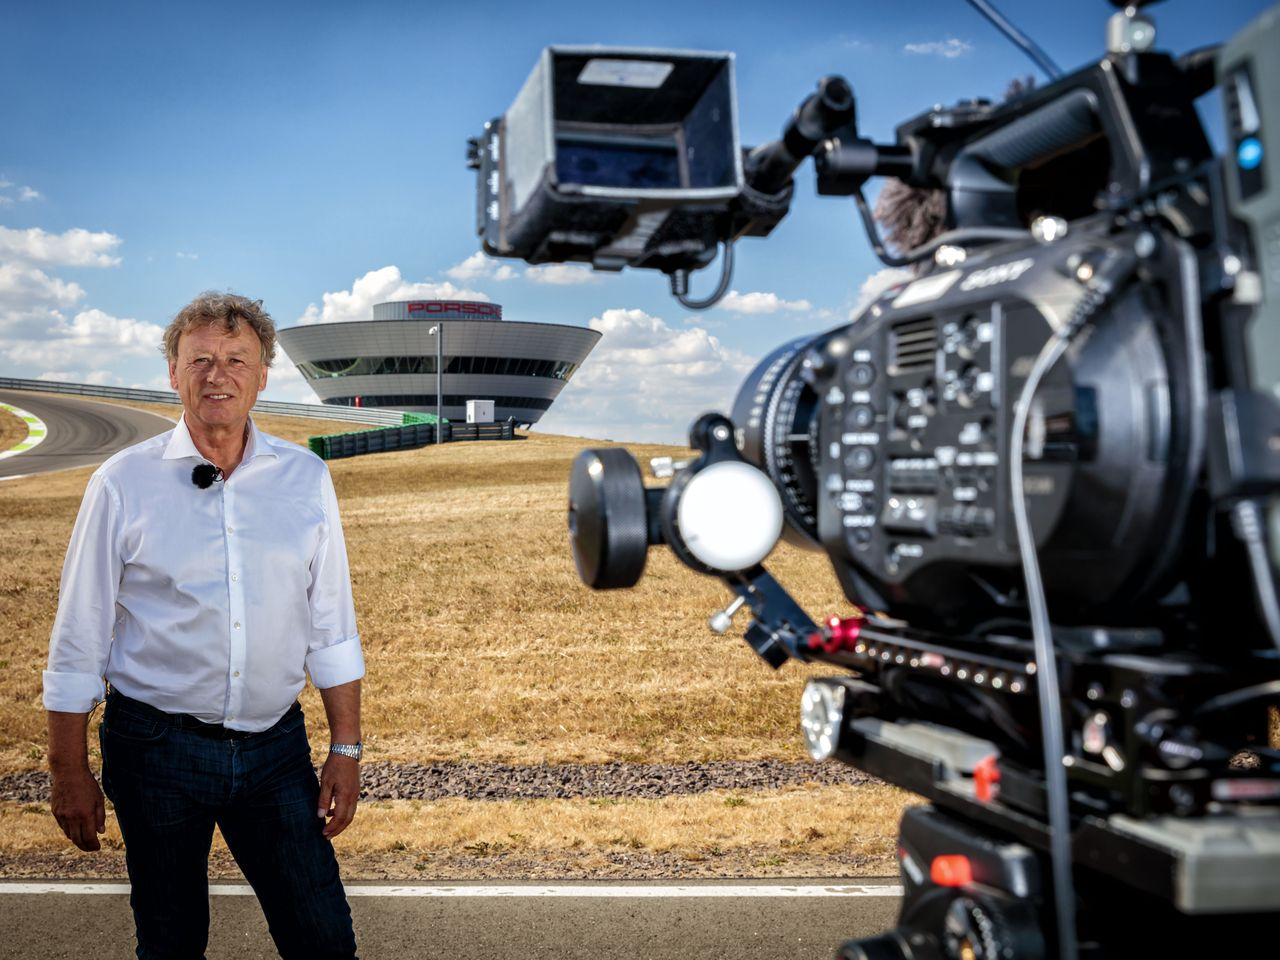 Tilke and his design office created the track in Leipzig. In the interview, he takes us through the individual sections. During filming at the Porsche Leipzig grounds, temperatures were well in excess of 30 degrees Celsius (86 degrees Fahrenheit).